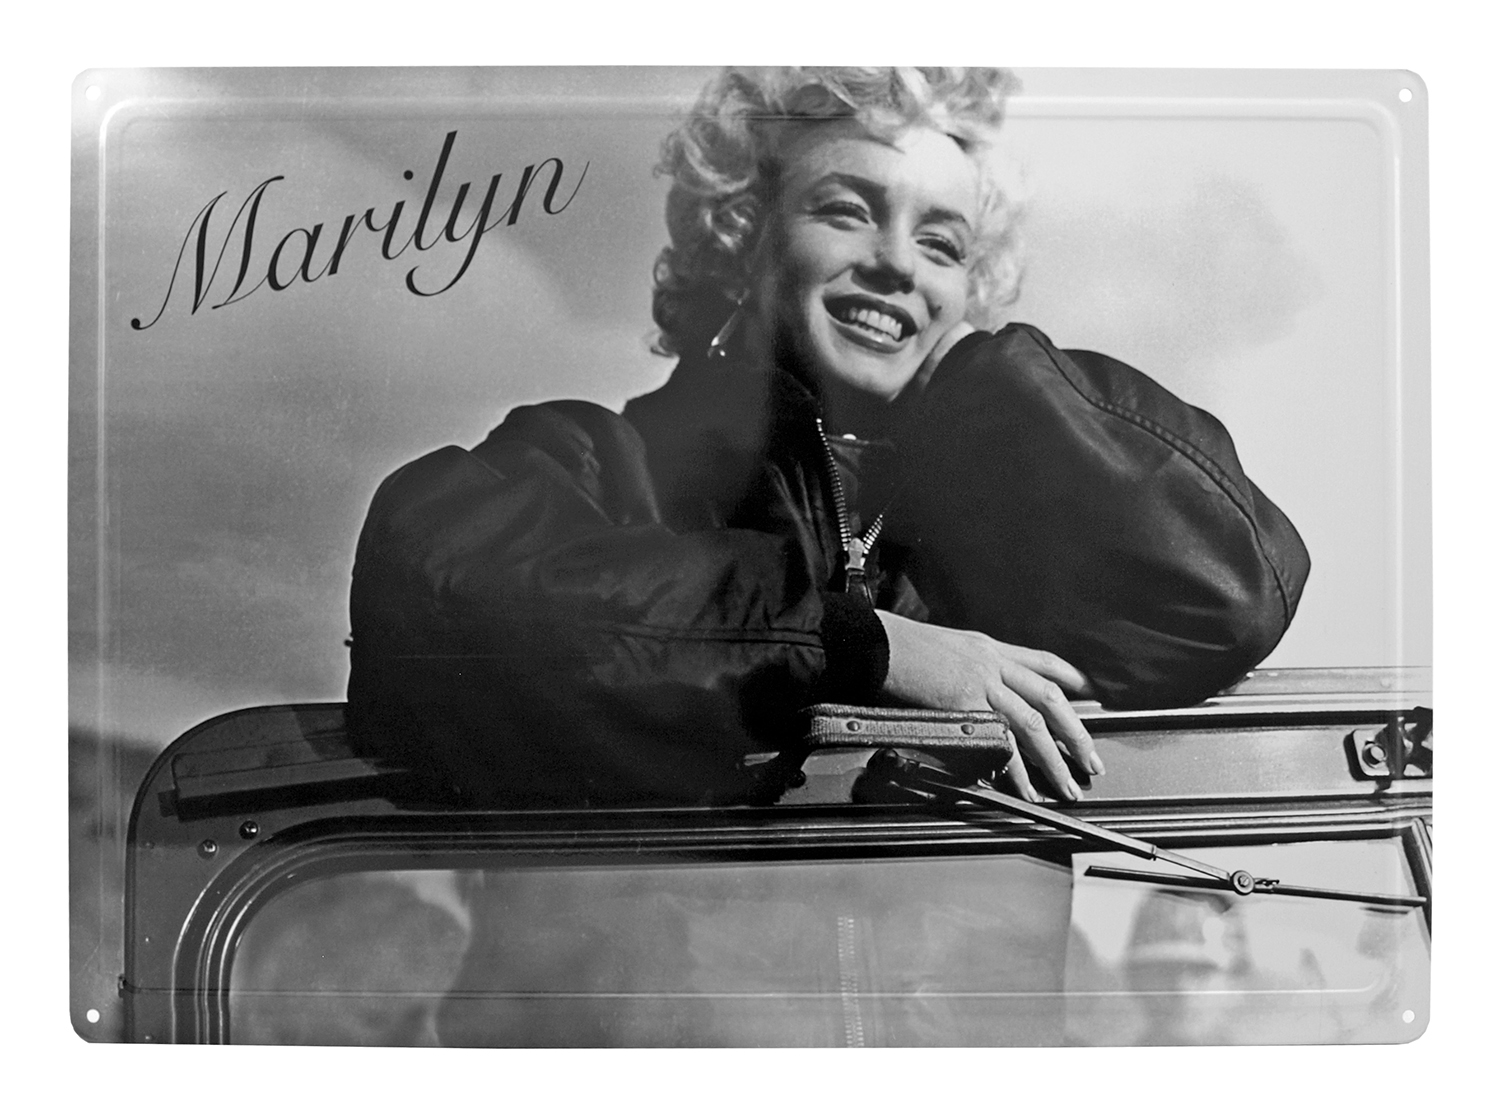 1954 Marilyn Monroe Visits American Troops in Korea Tin Wall Sign - Black and White